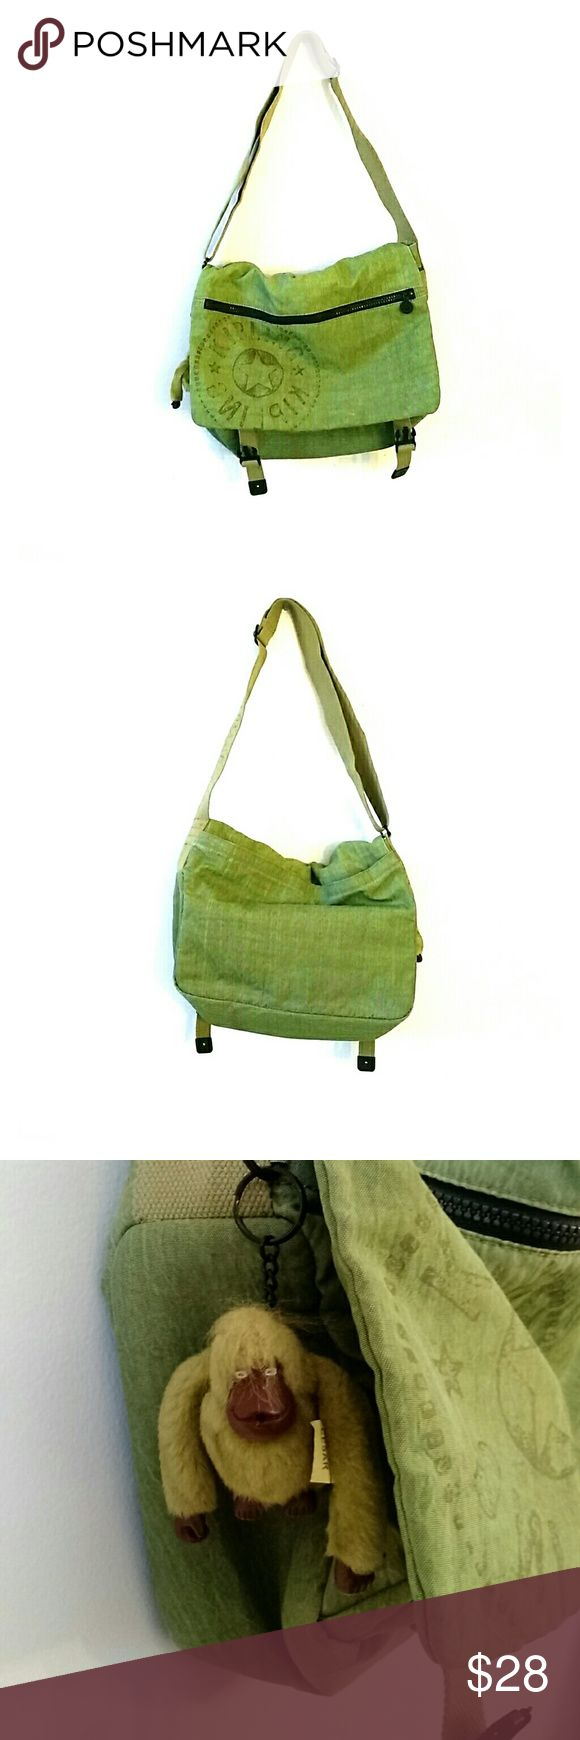 "LOWER PRICE- Kipling large messenger bag Large messenger bag (can fit 17"" laptop) with adjustable straps, beautiful and subtle green color, in great condition, has one small light ink stain on the inside front panel (see last photo) Kipling Bags Crossbody Bags"